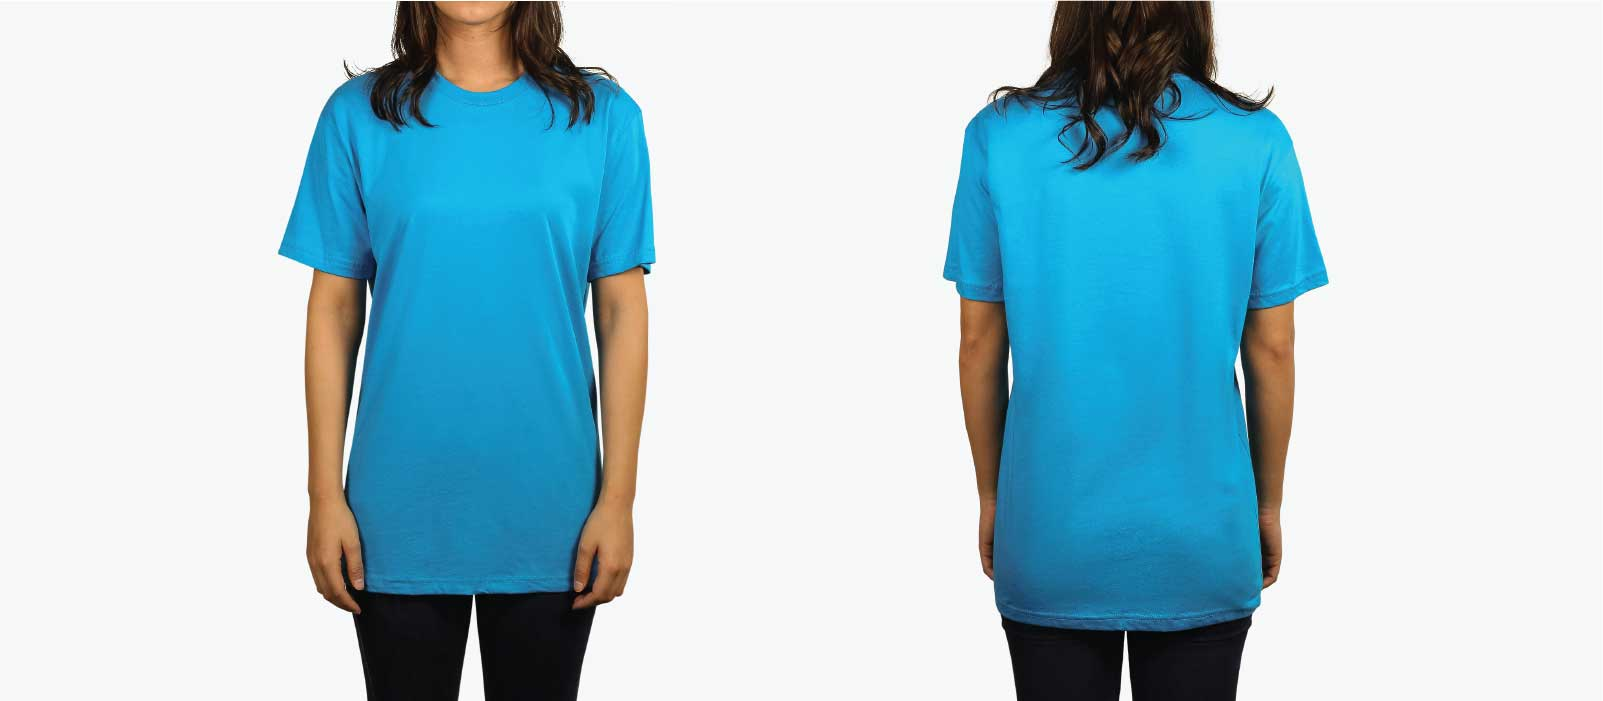 front and back model of woman wearing turquoise shirt